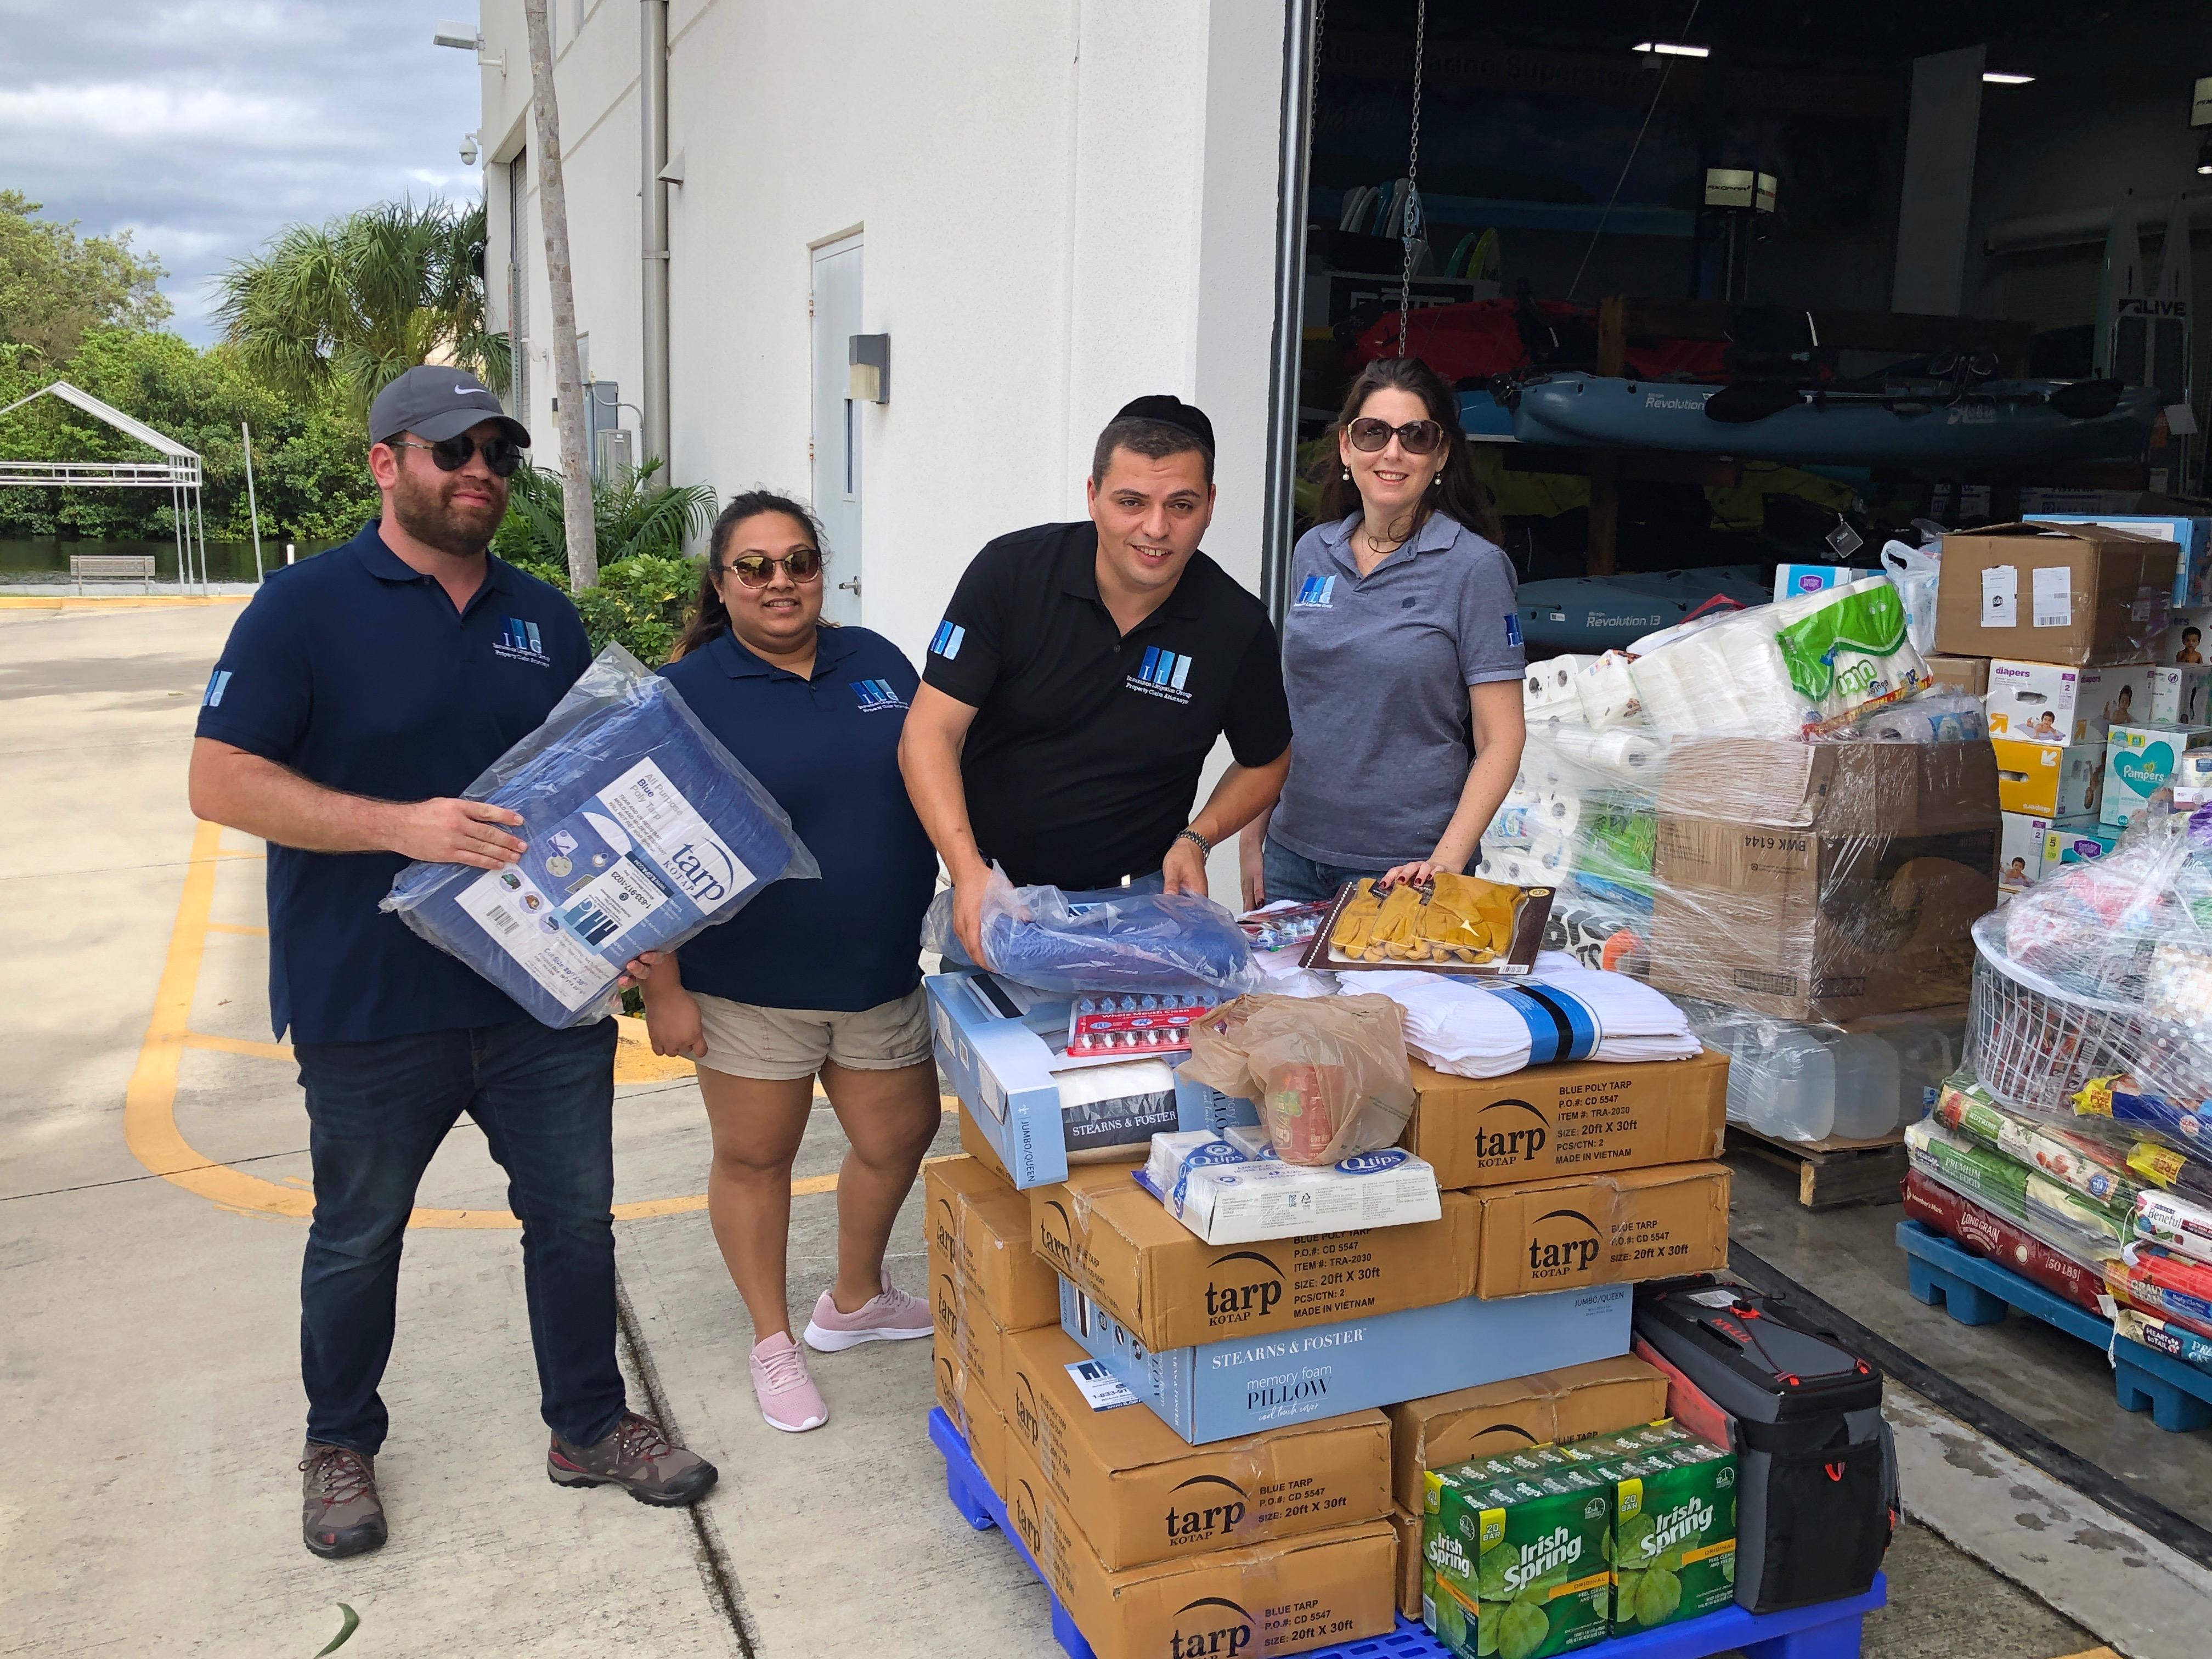 ILG joins Hurricane Dorian Relief Effort by Donating Several Large Tarps and Supplies for Residents of the Abacos and Bahamas and Launches Hurricane Dorian Help Center on Facebook